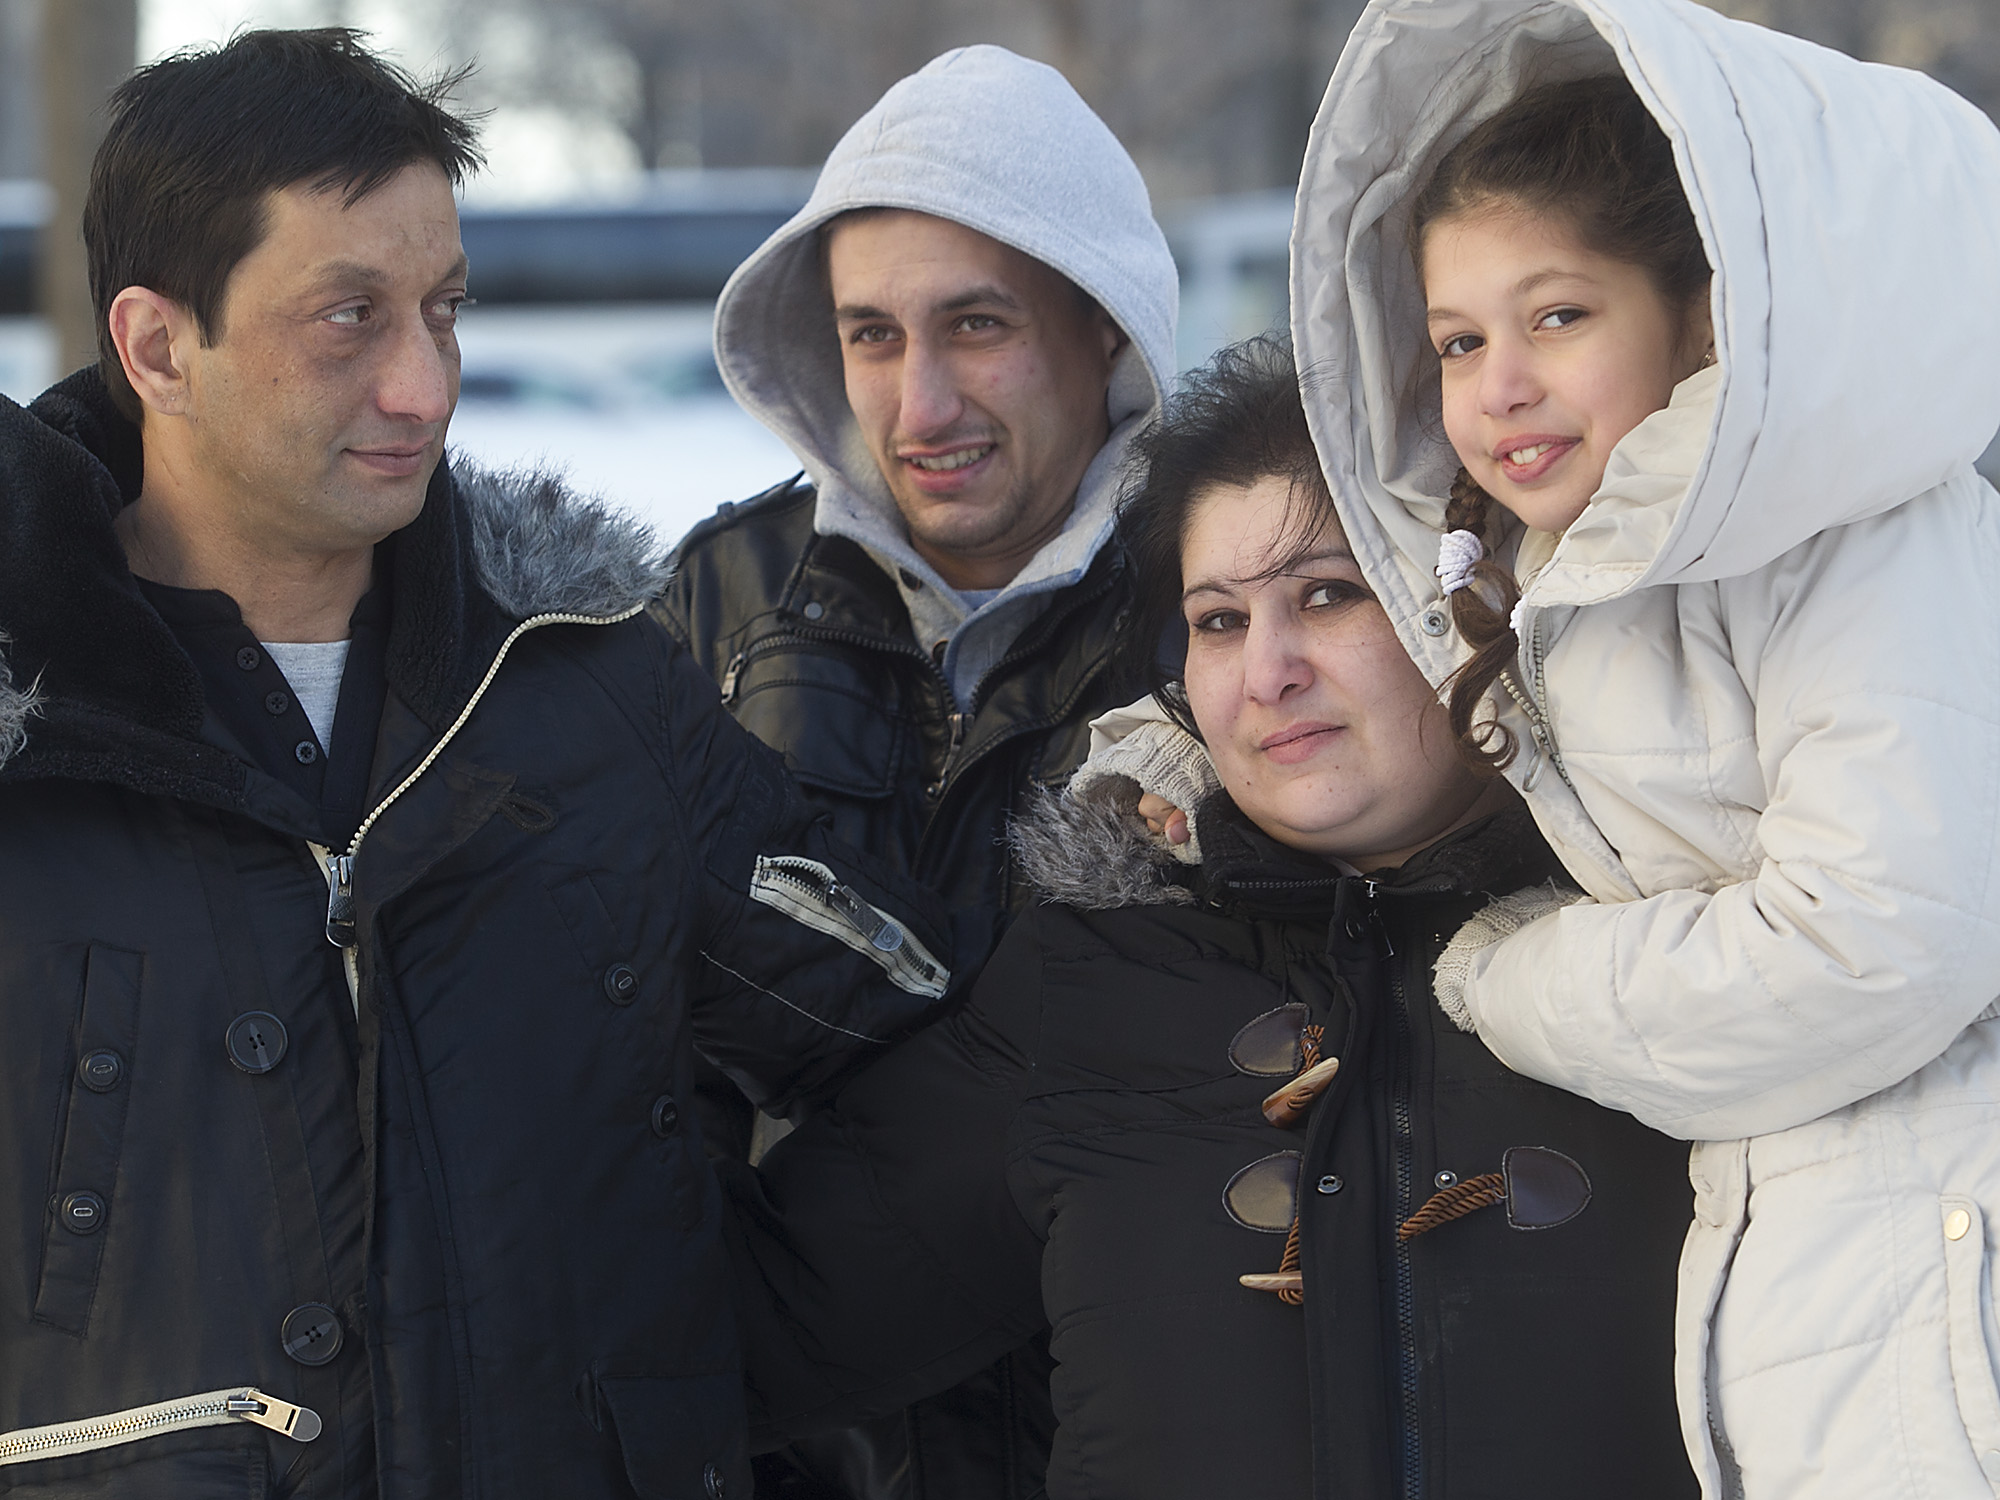 Call For Support Roma Family Facing Deportation To Hungary In One